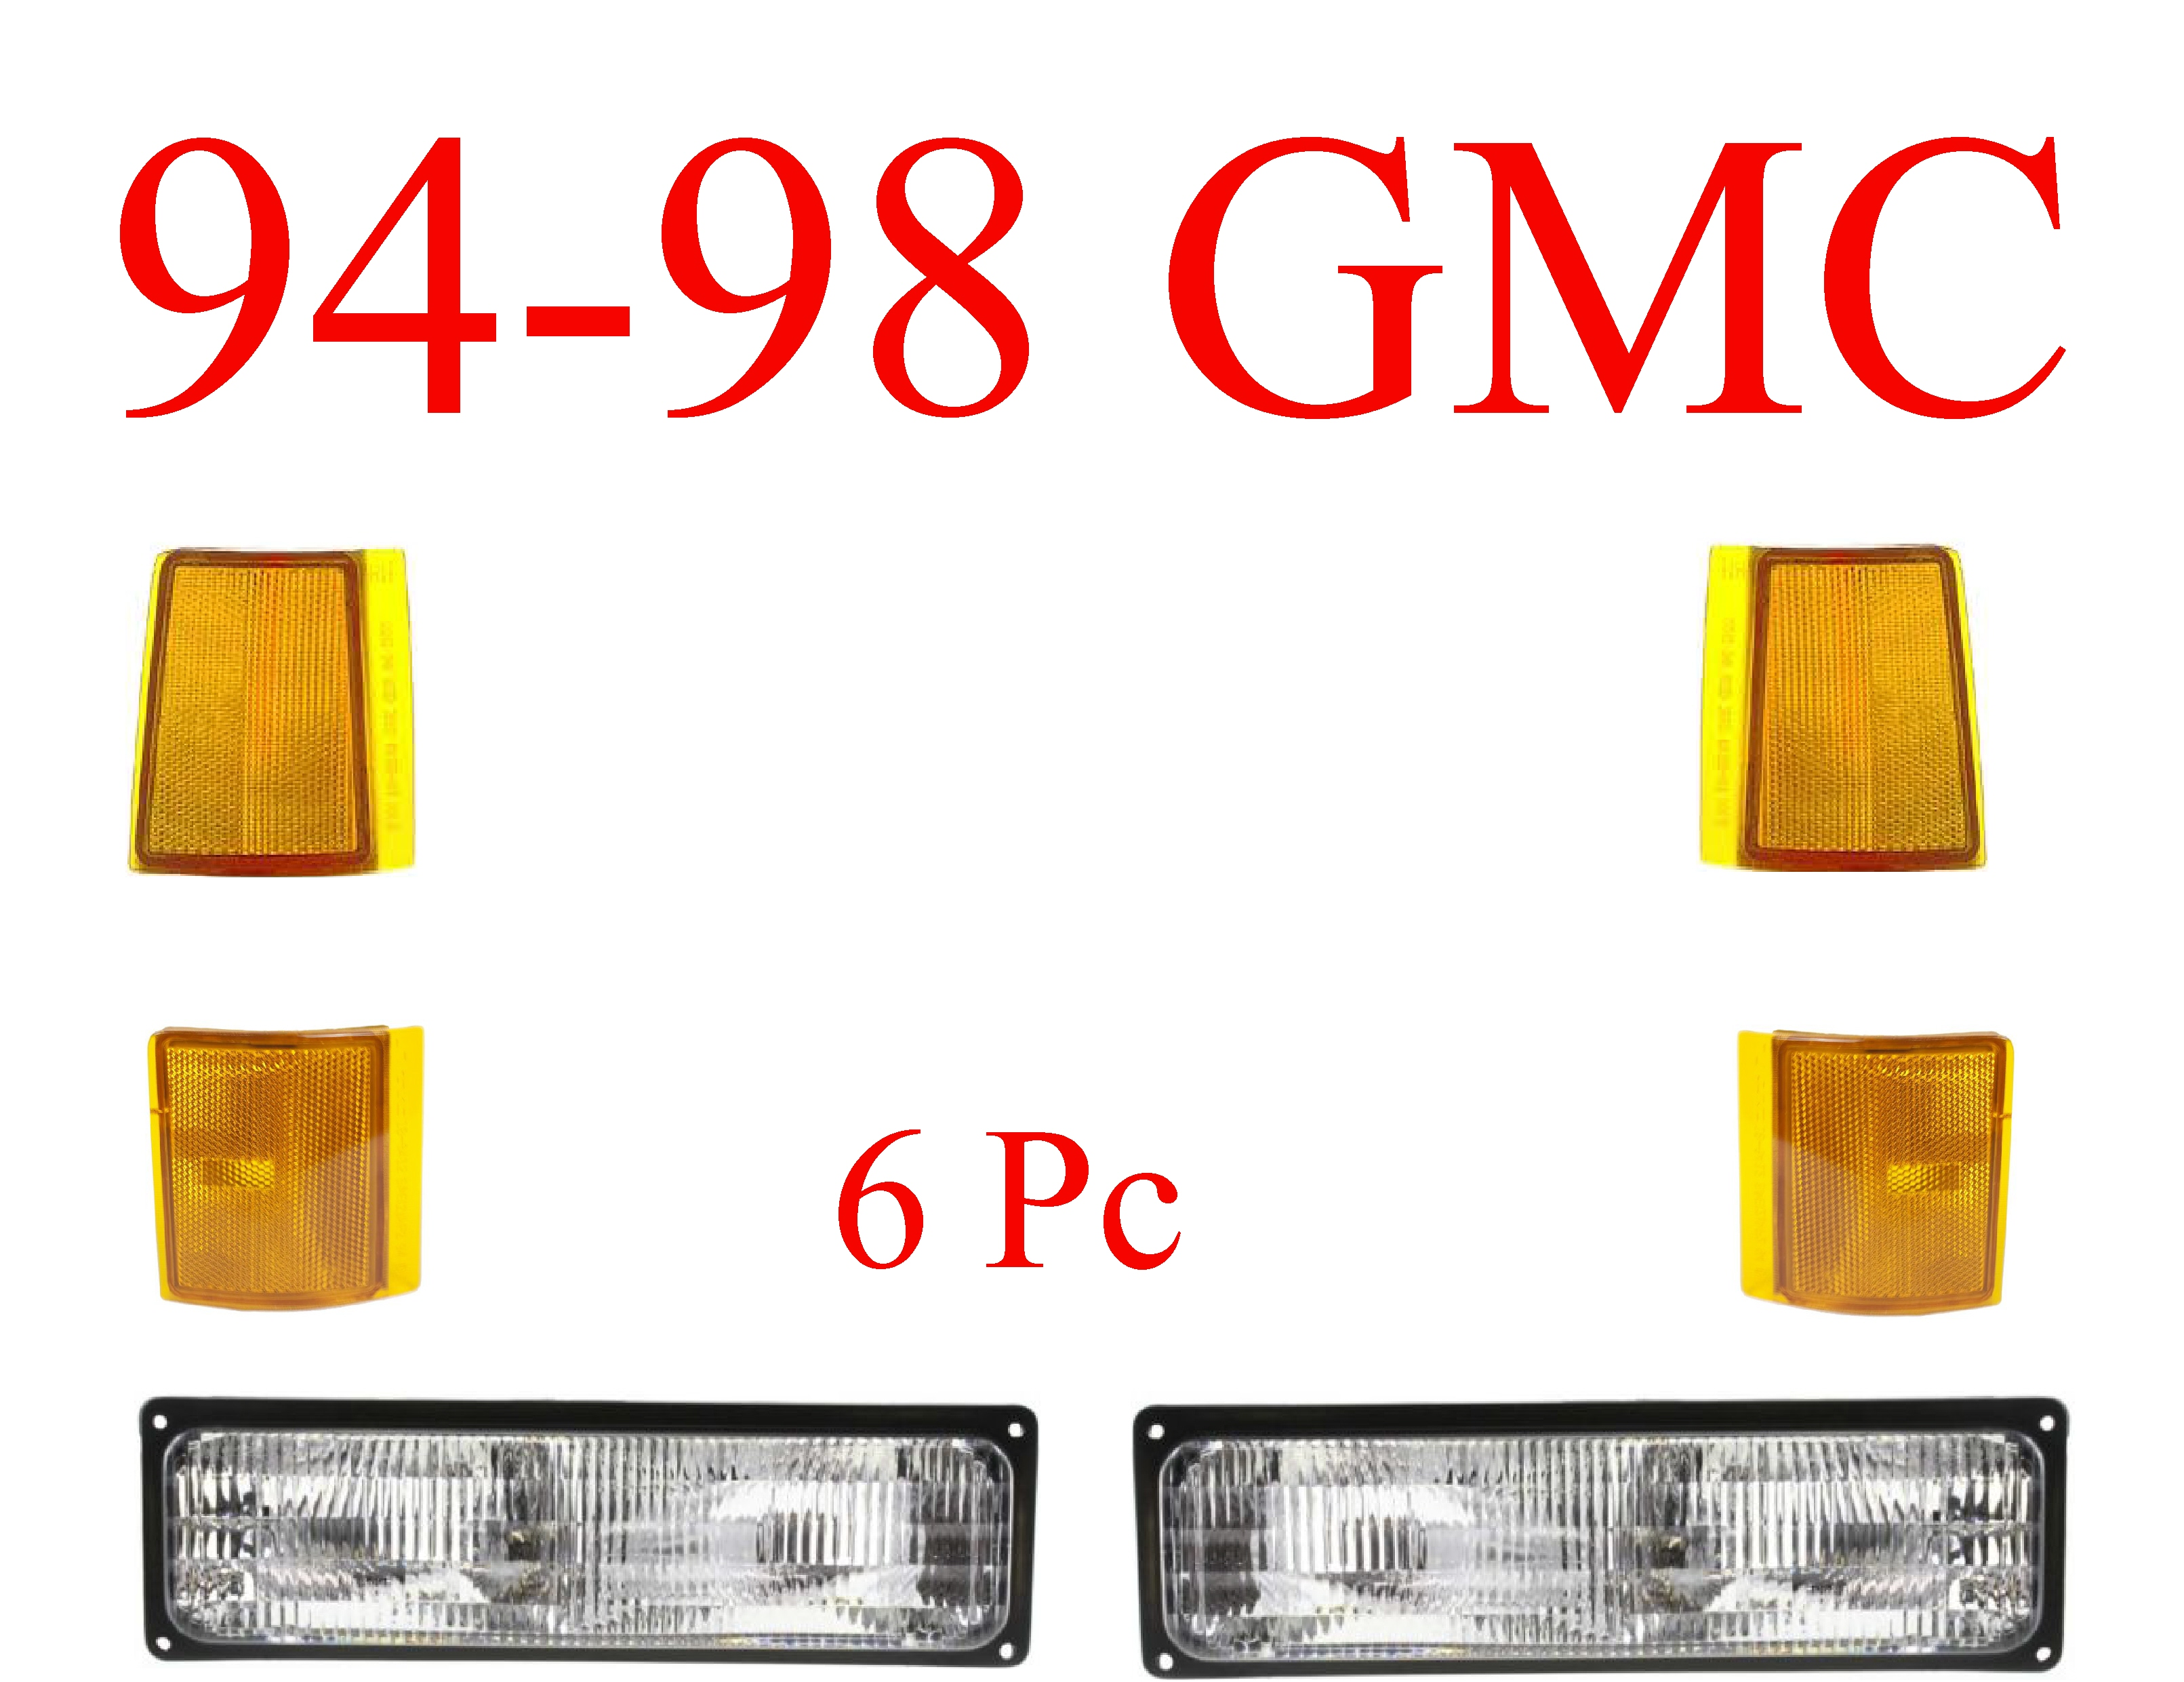 94-98 GMC Truck 6Pc Front Light Kit